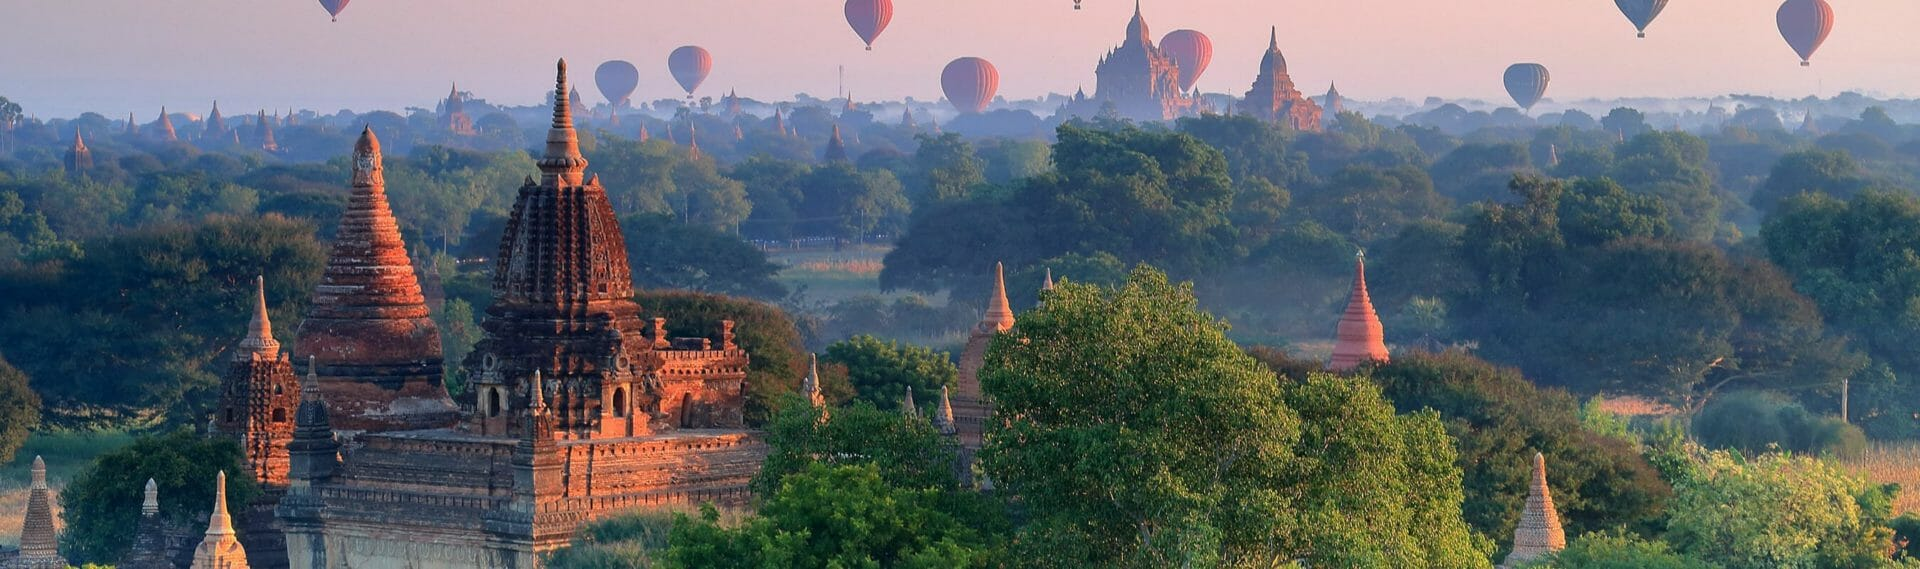 Bagan_Lets Travel